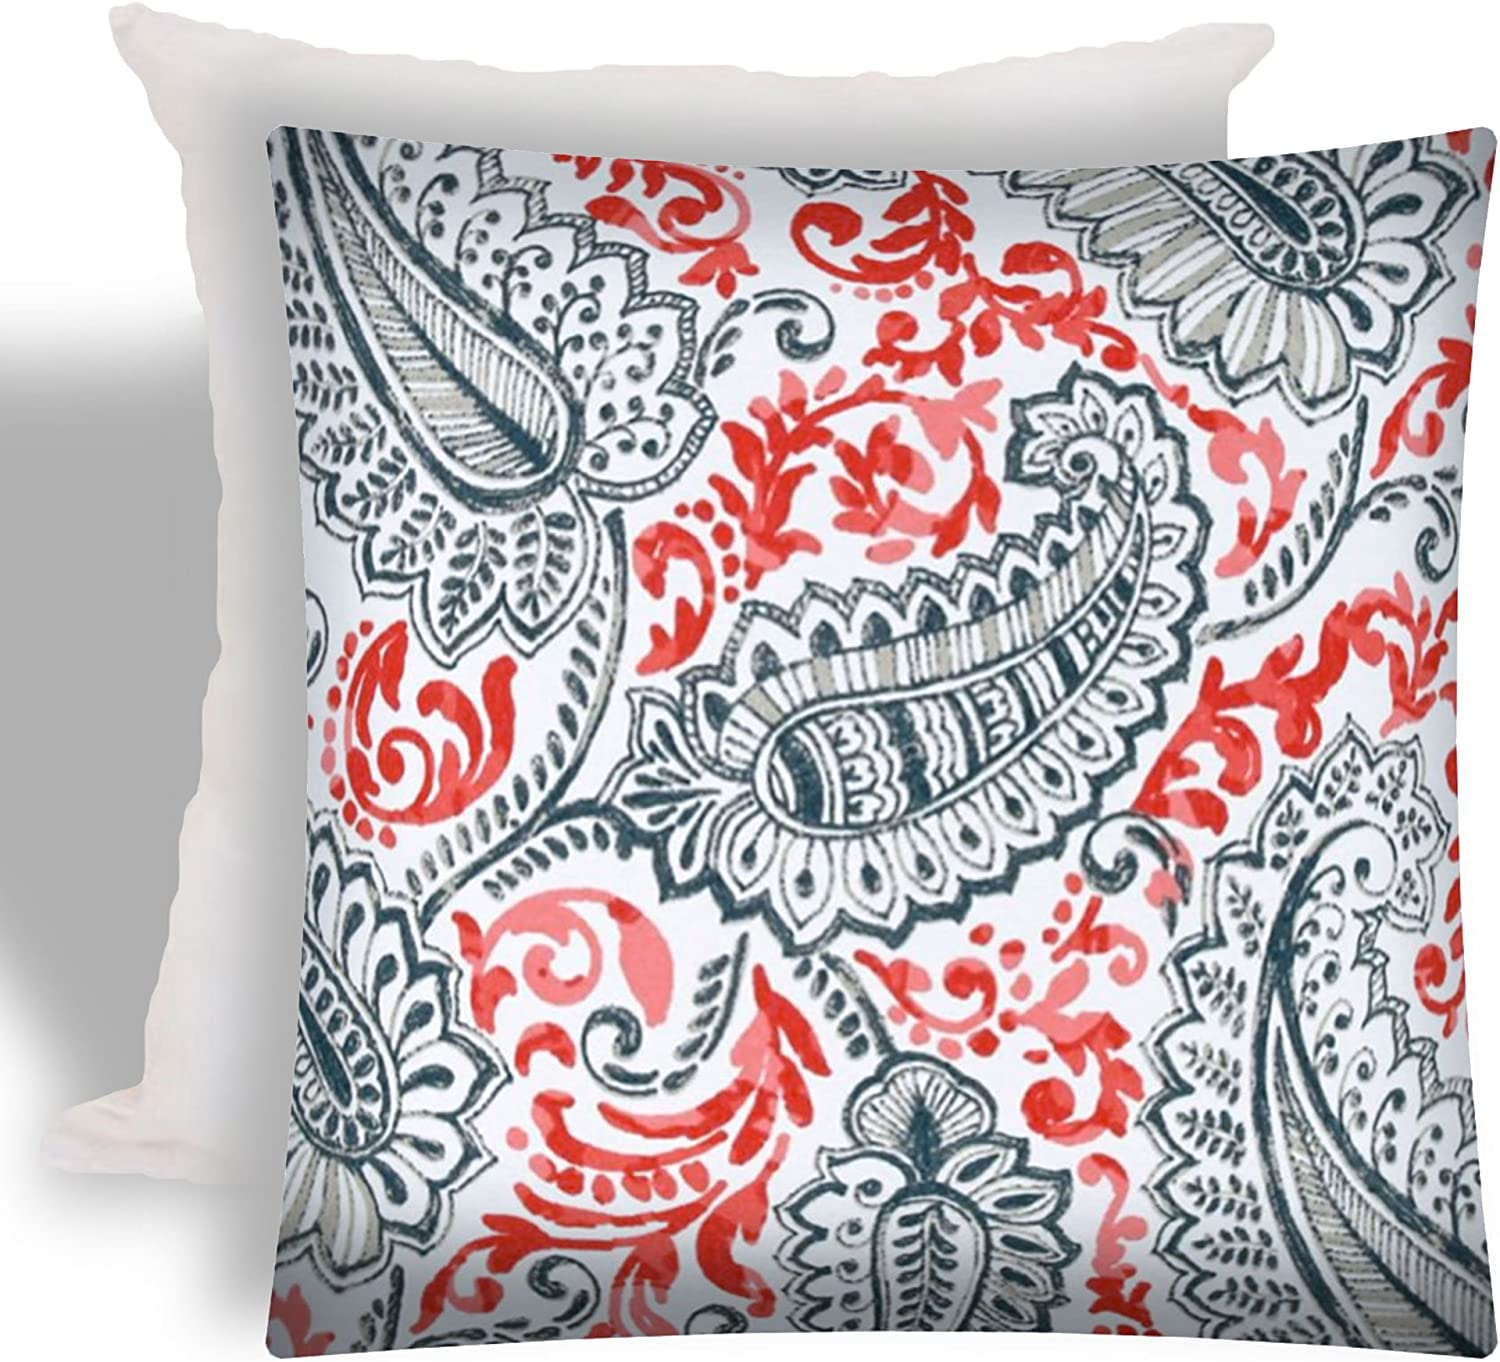 Joita Palmetto Square Polyester Outdoor Zippered Pillow Cover with Insert in Red